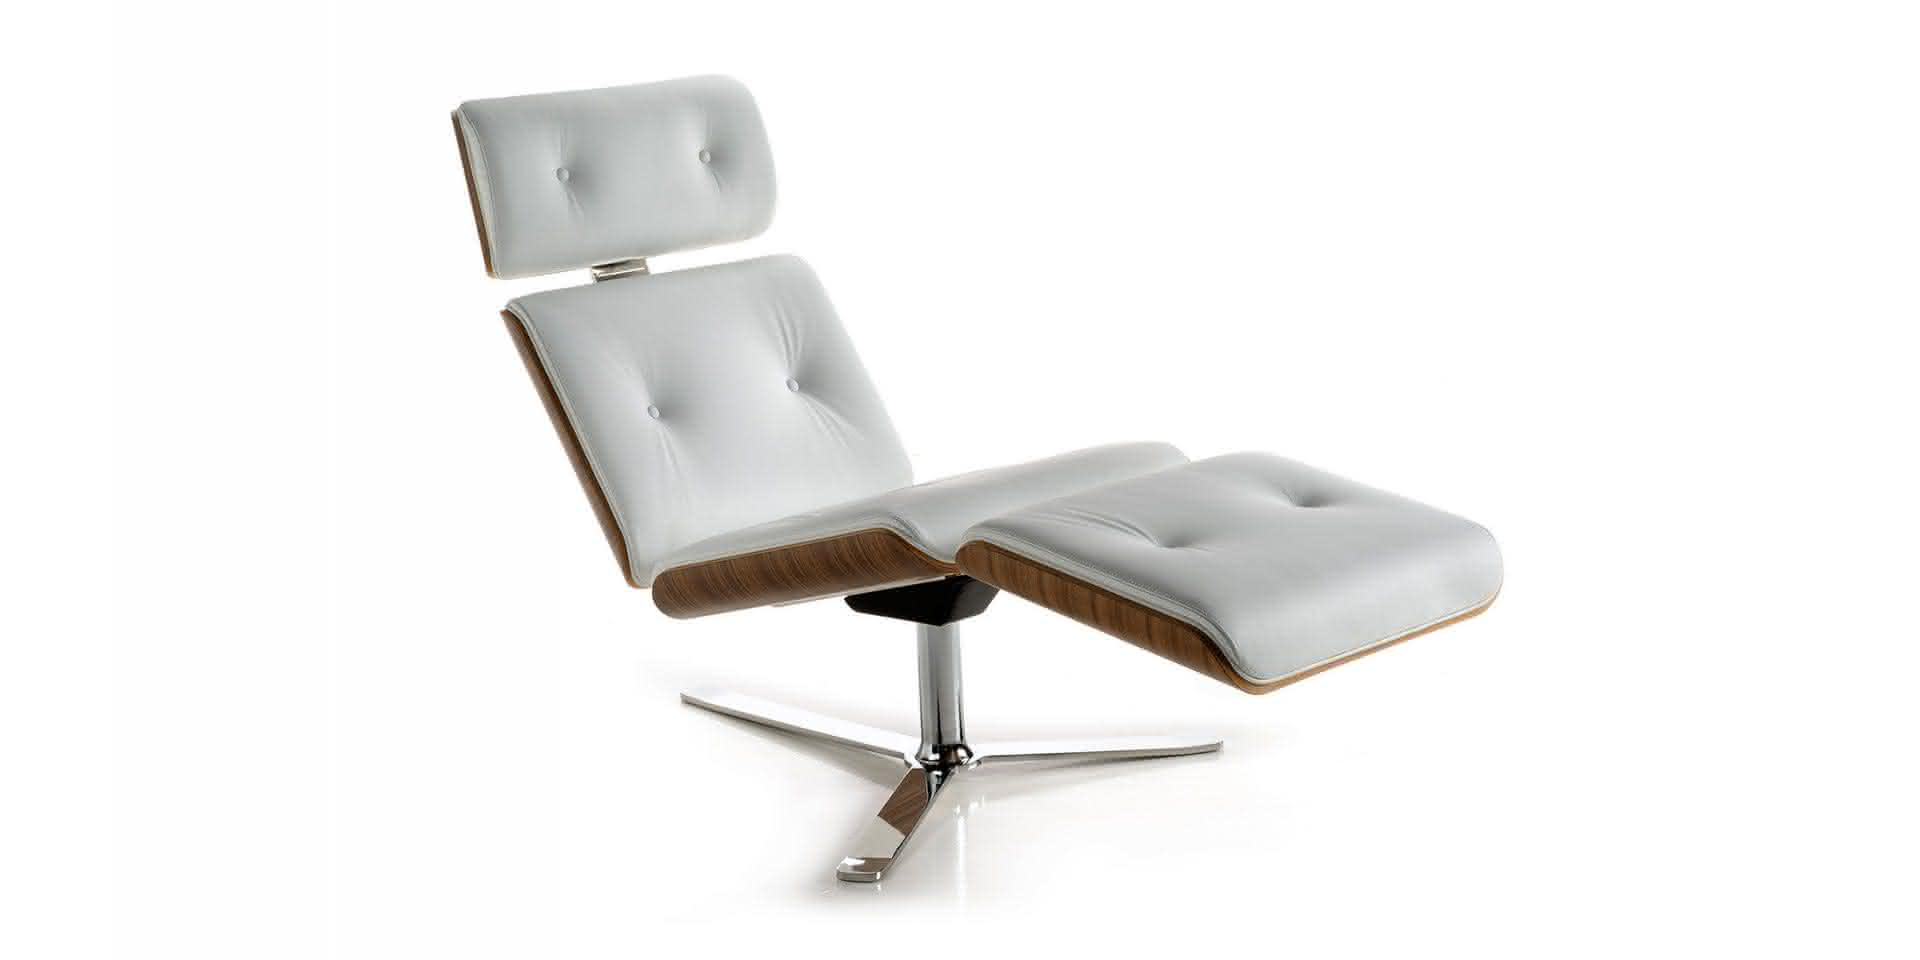 Chaise Longue Design Outlet Chaise Longue Cdi Collection Armadillo Chaise Longue